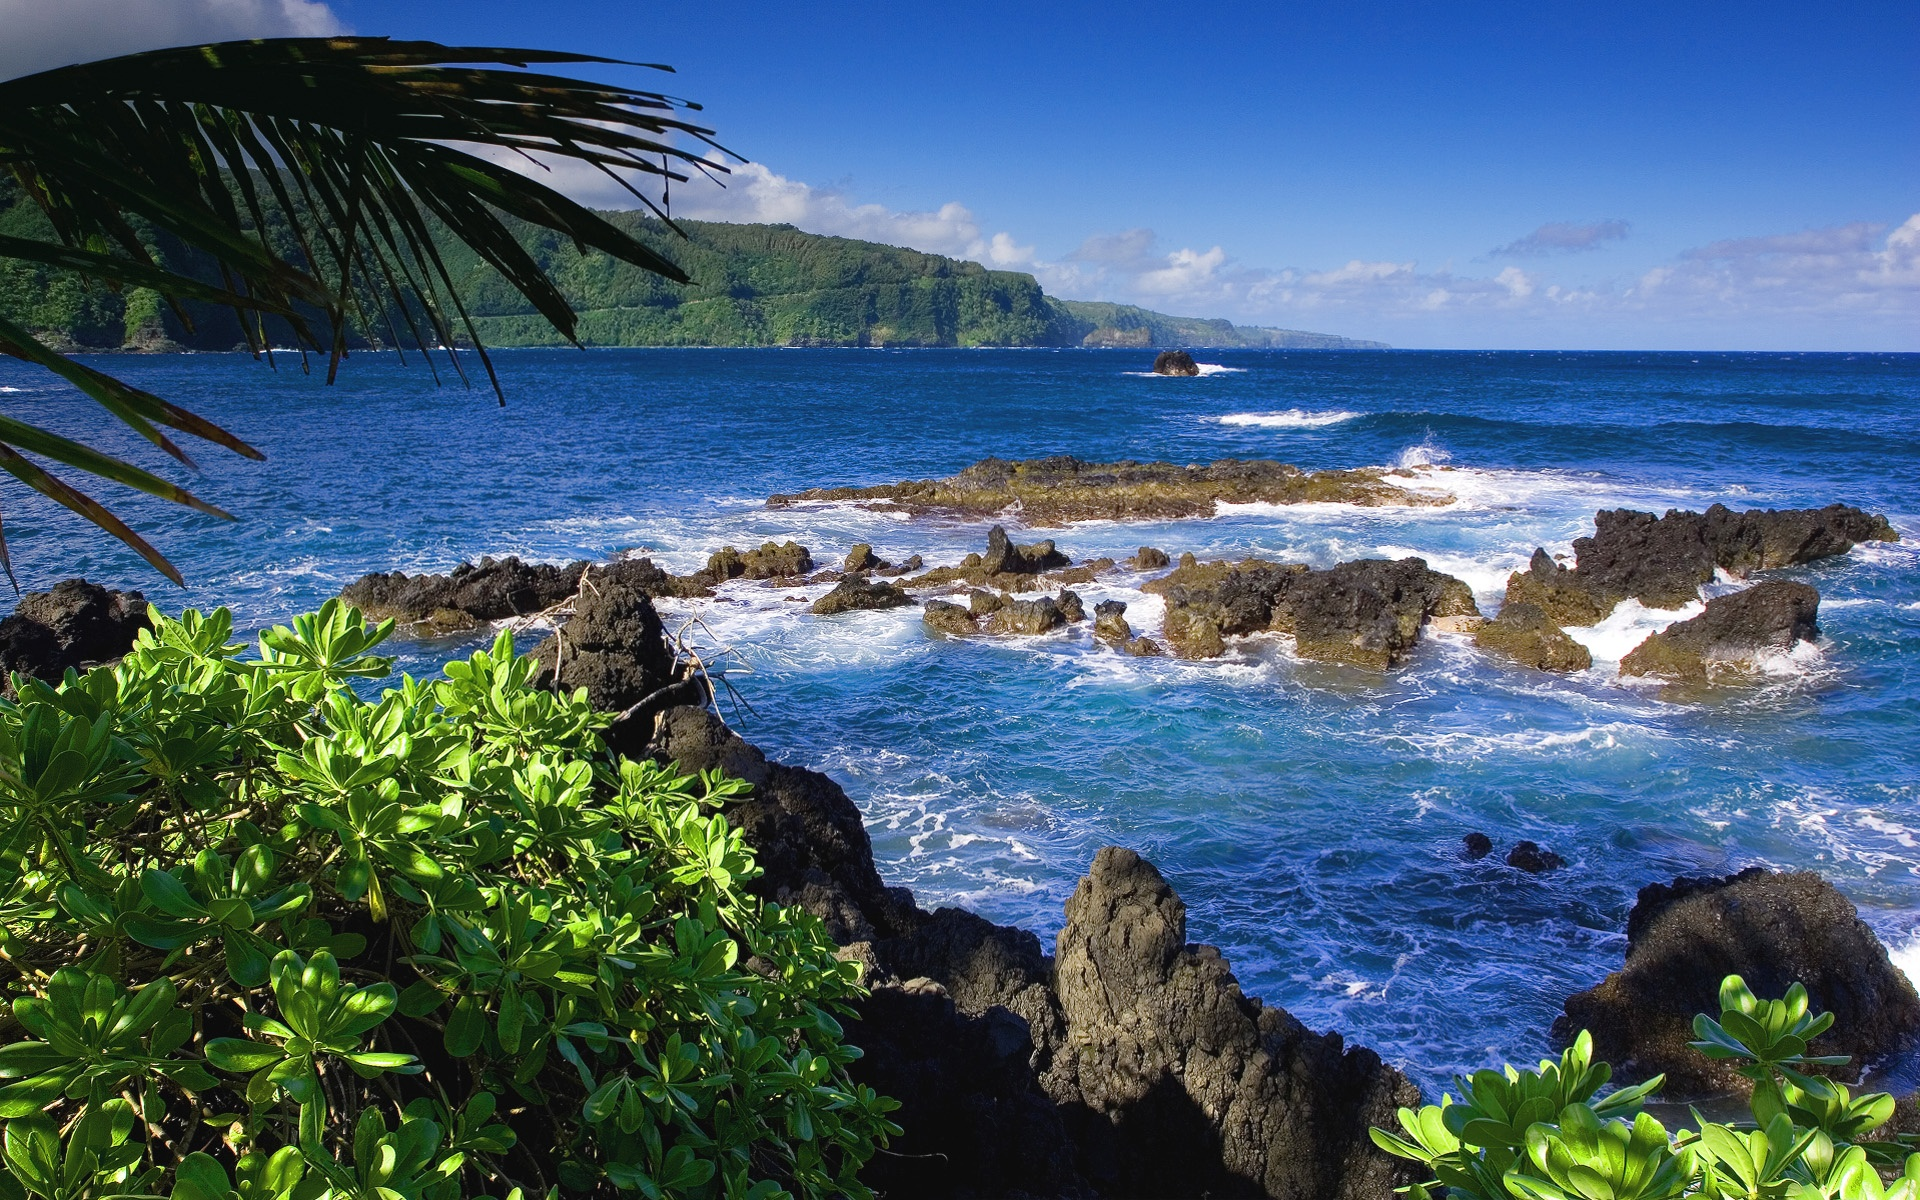 Hawaii Wallpapers in jpg format for free download